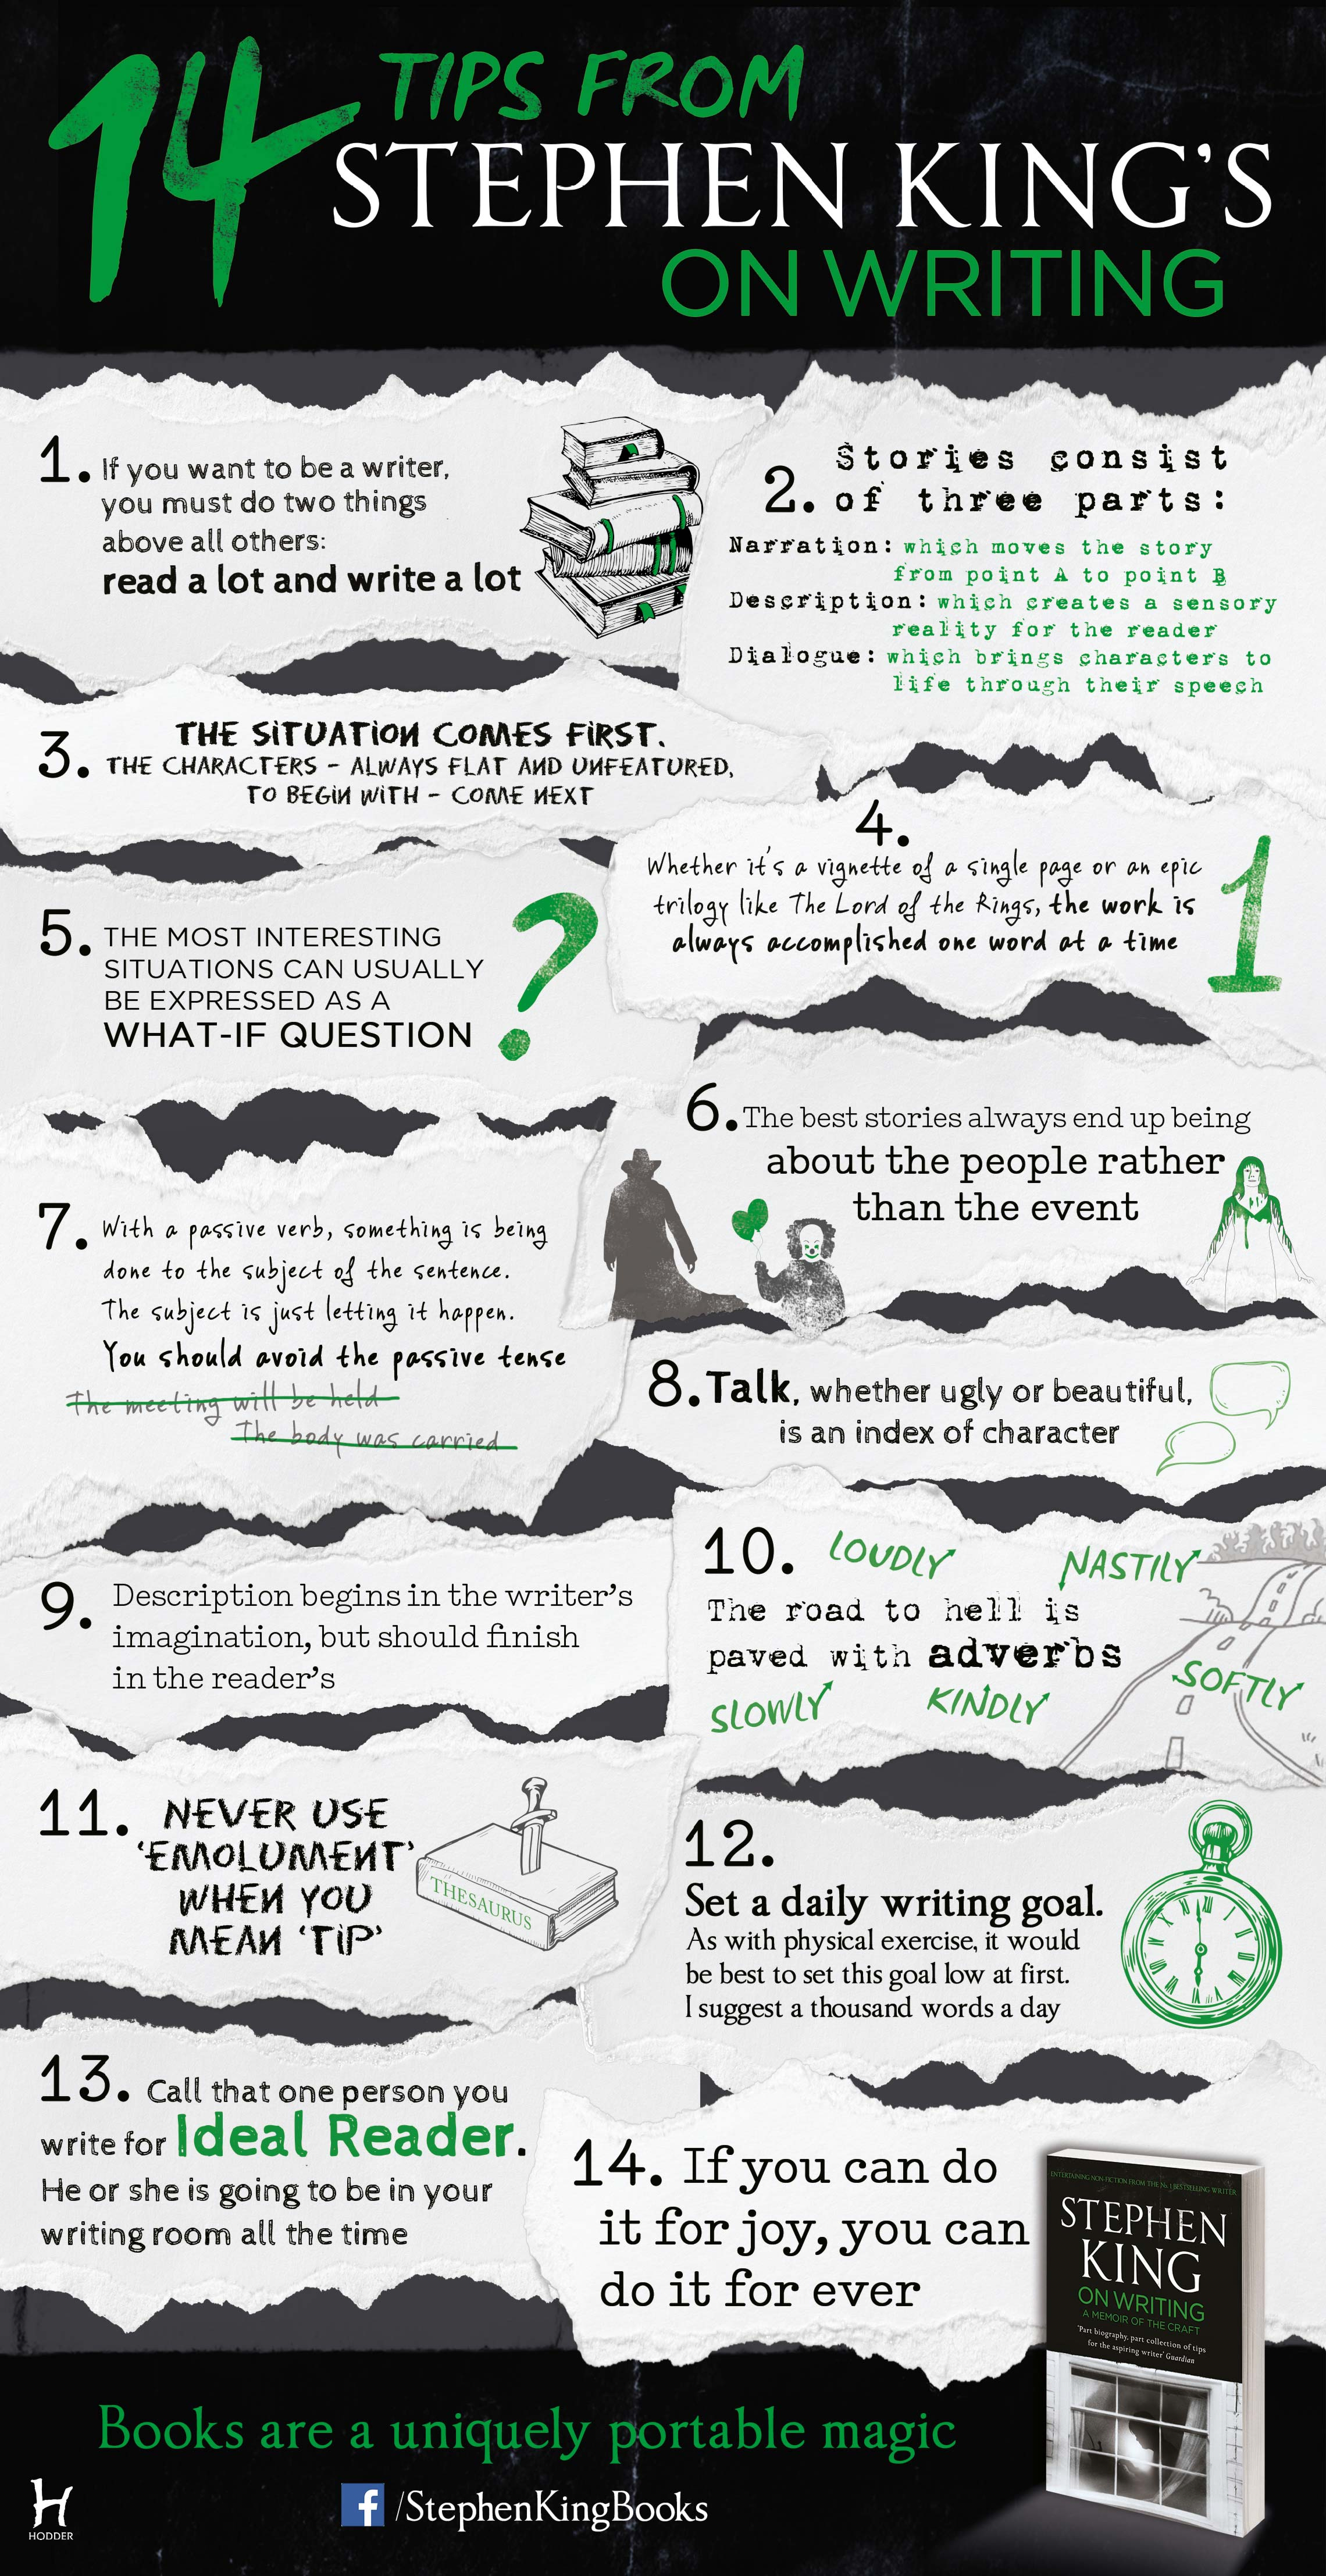 14 Tips From Stephen King's On Writing